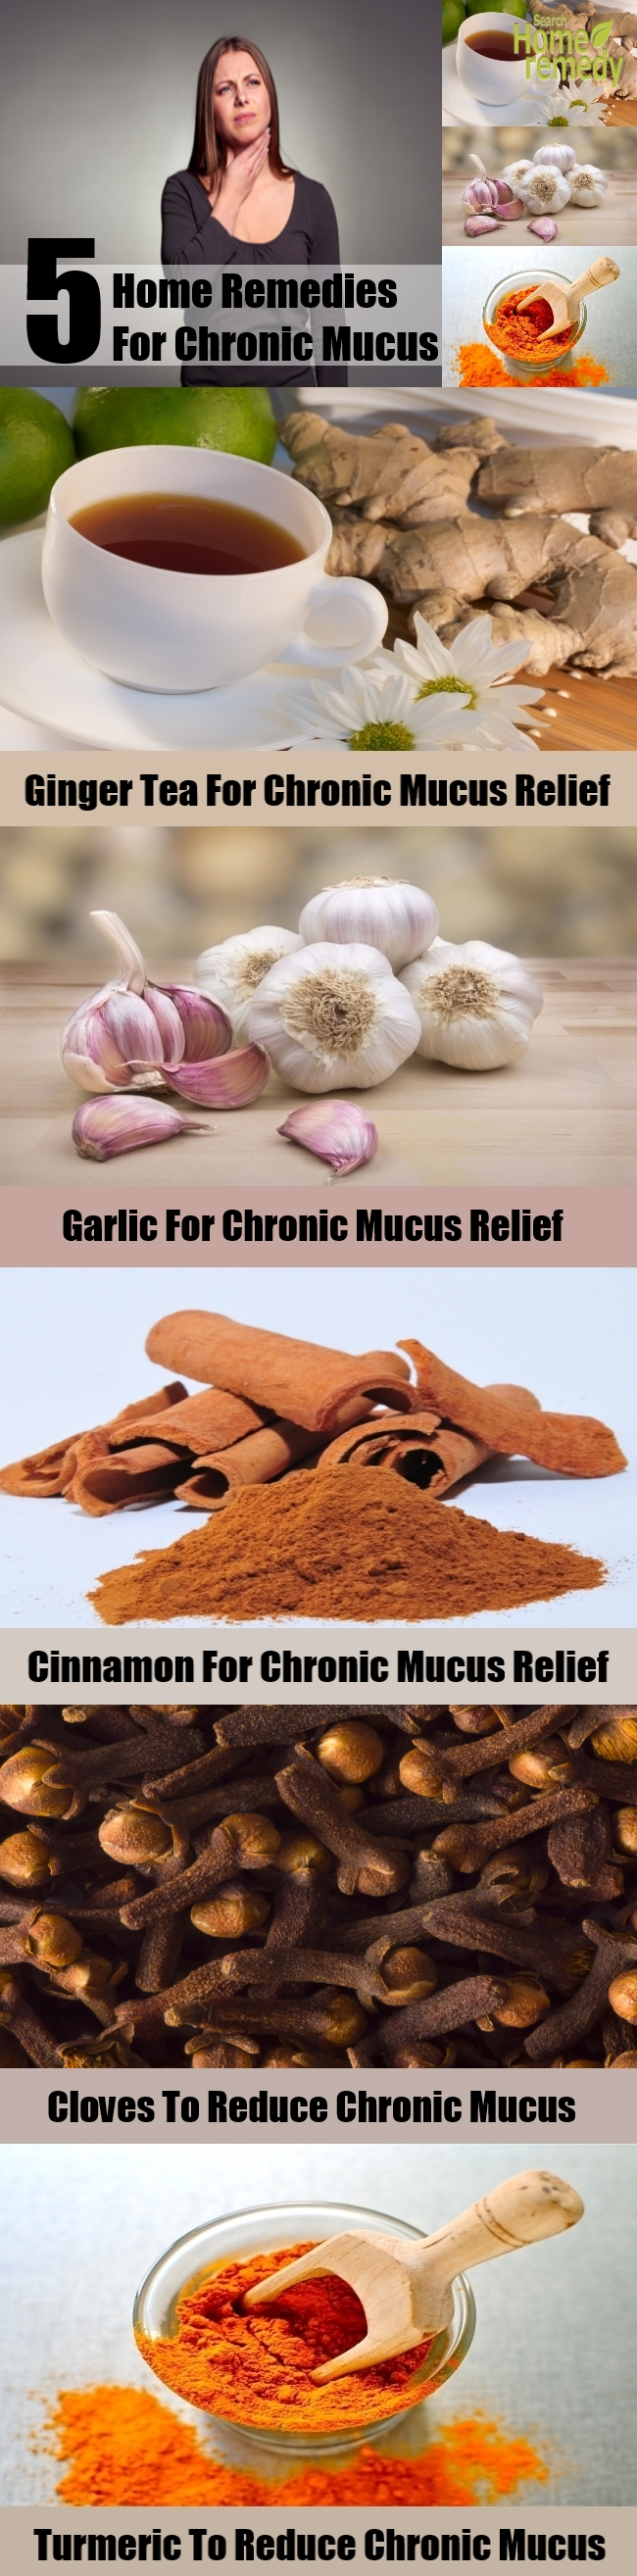 5 Best Home Remedies For Chronic Mucus